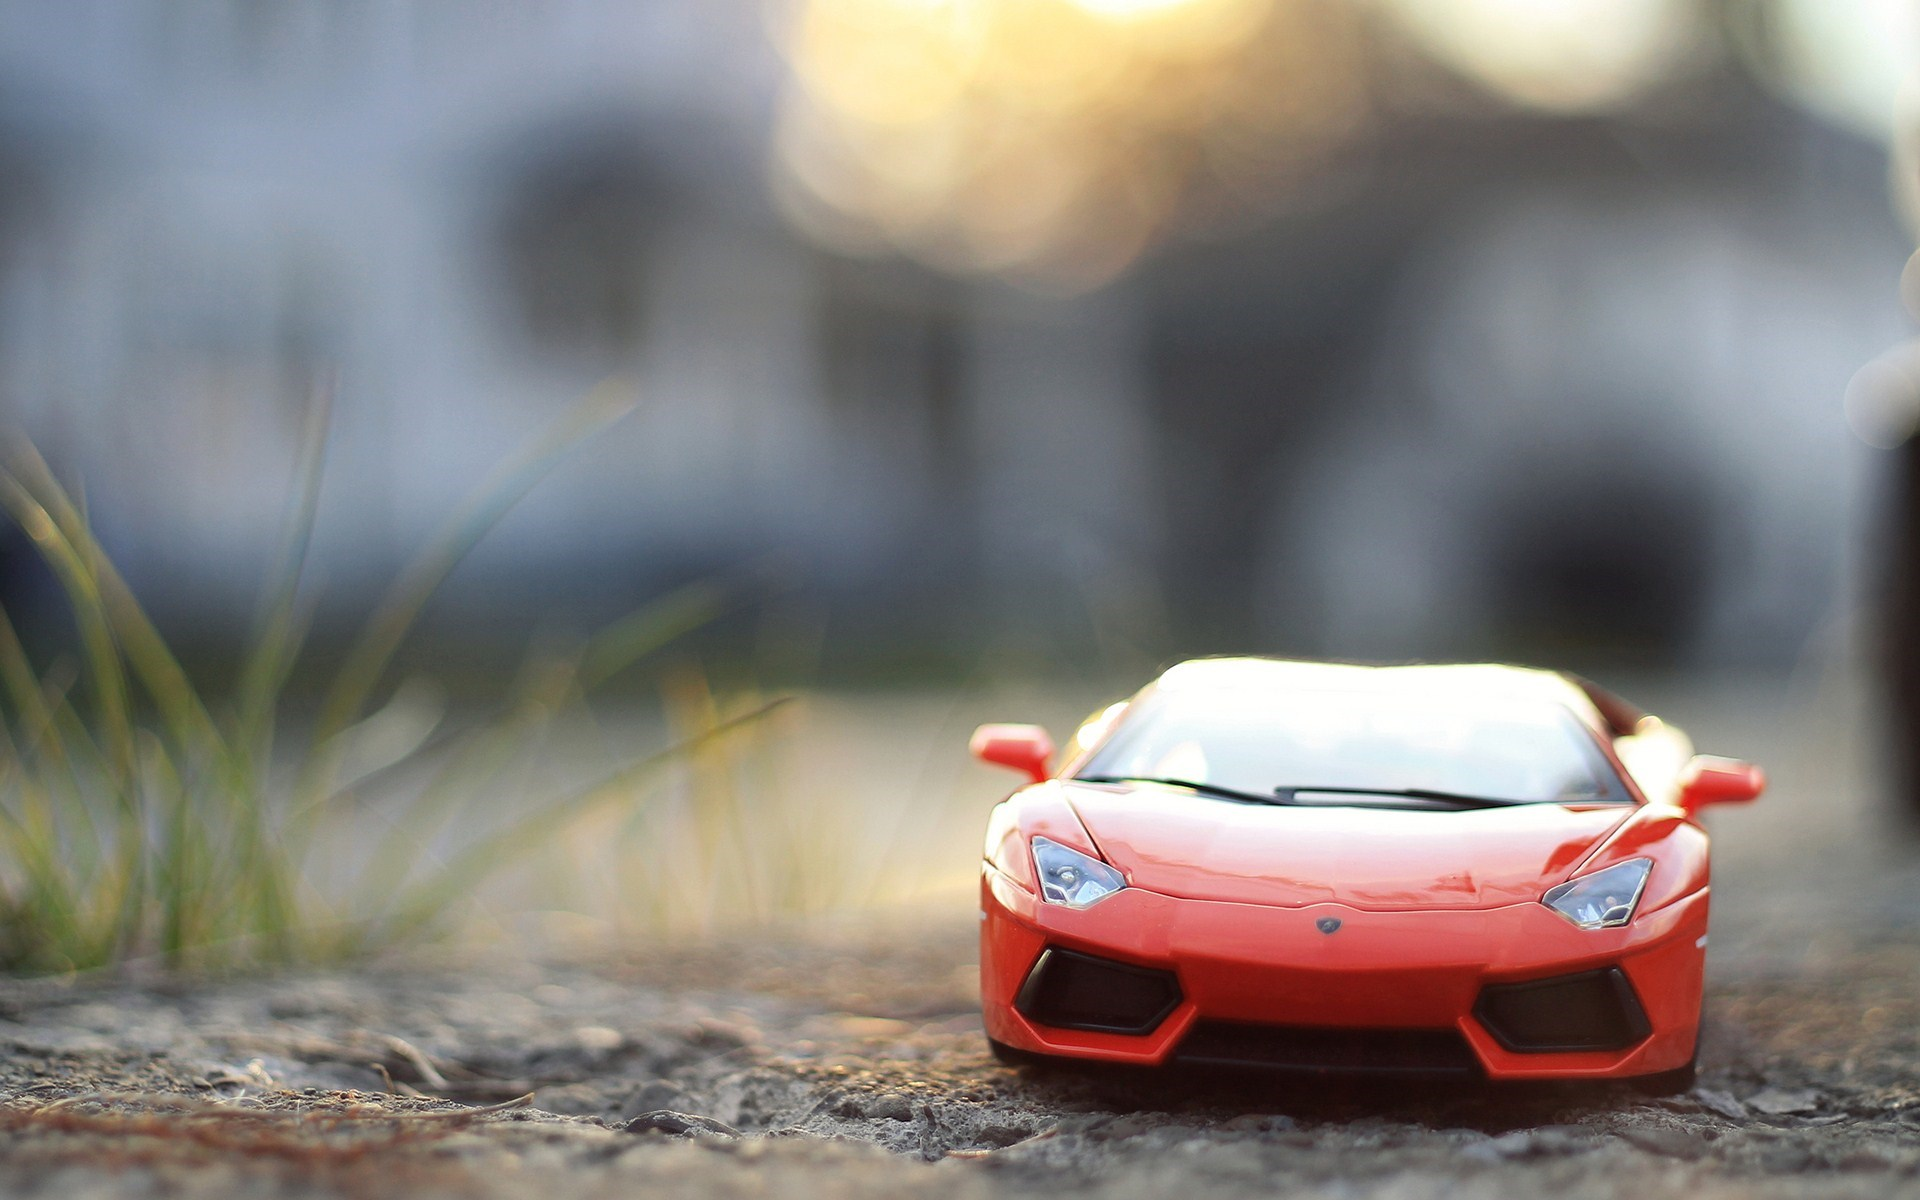 12 Outstanding HD Toy Car Wallpapers 1920x1200